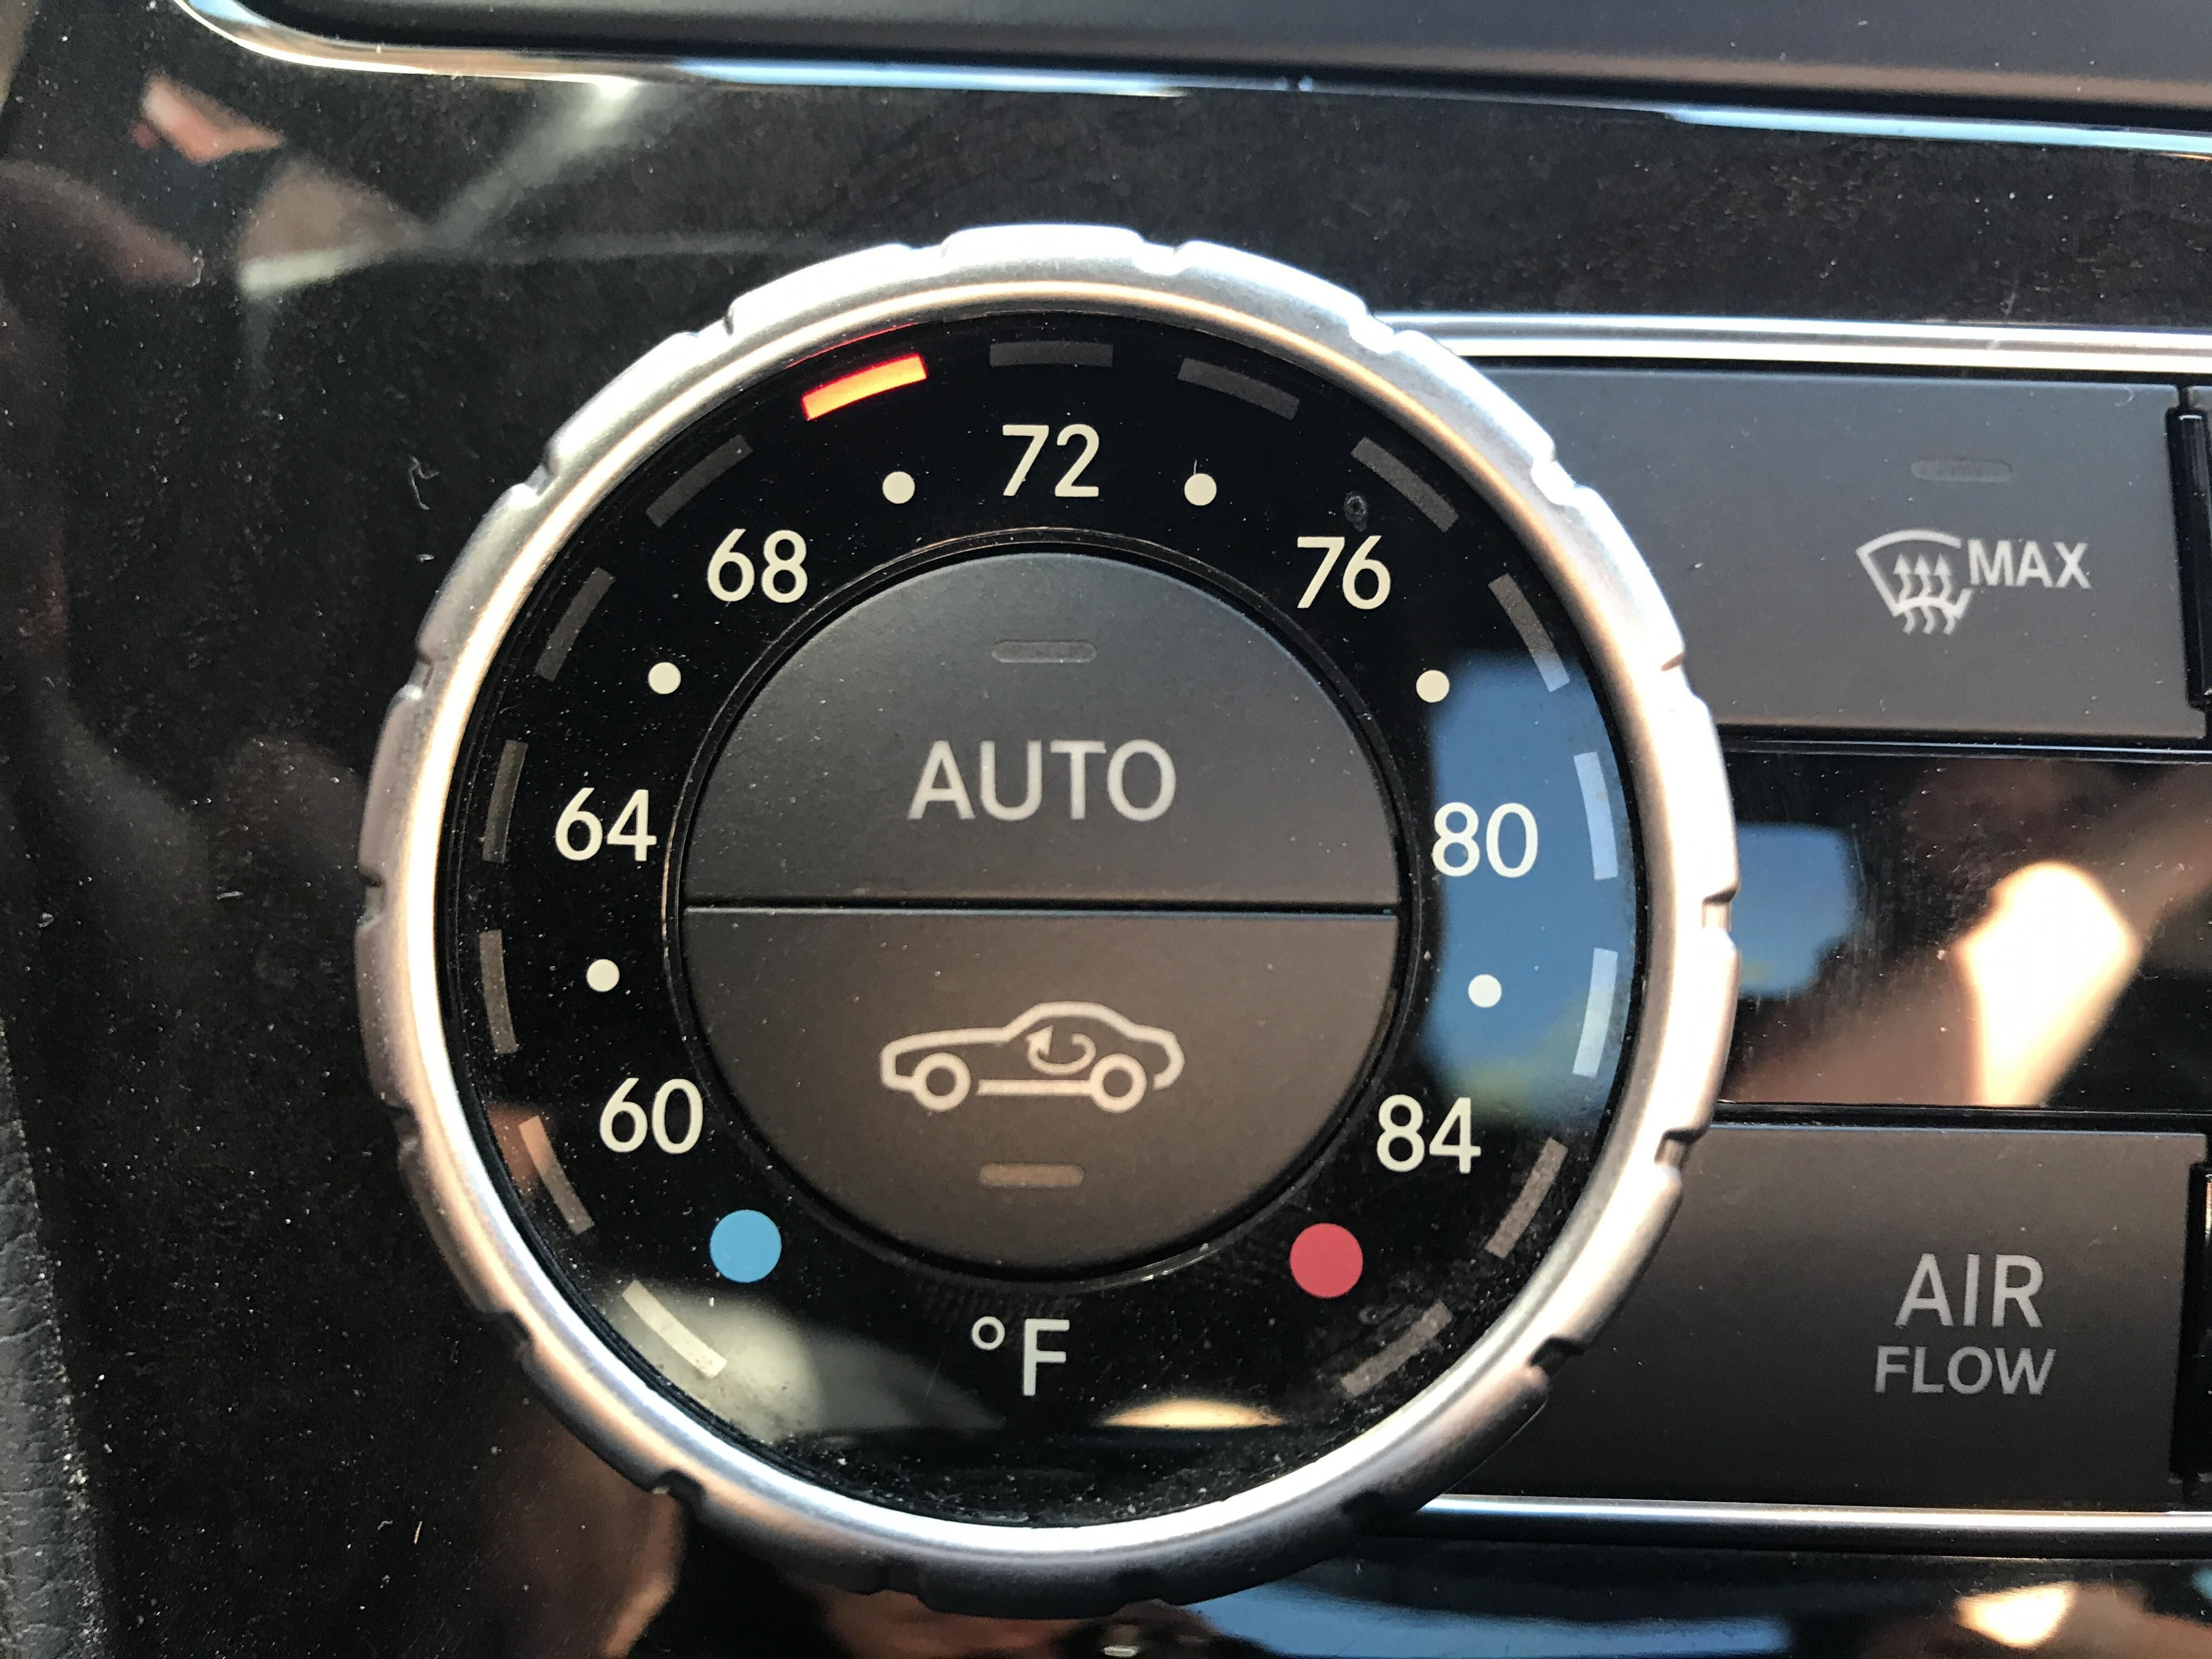 The Air Recirculation Symbol On My Car Is The Exact Shape Of The Car